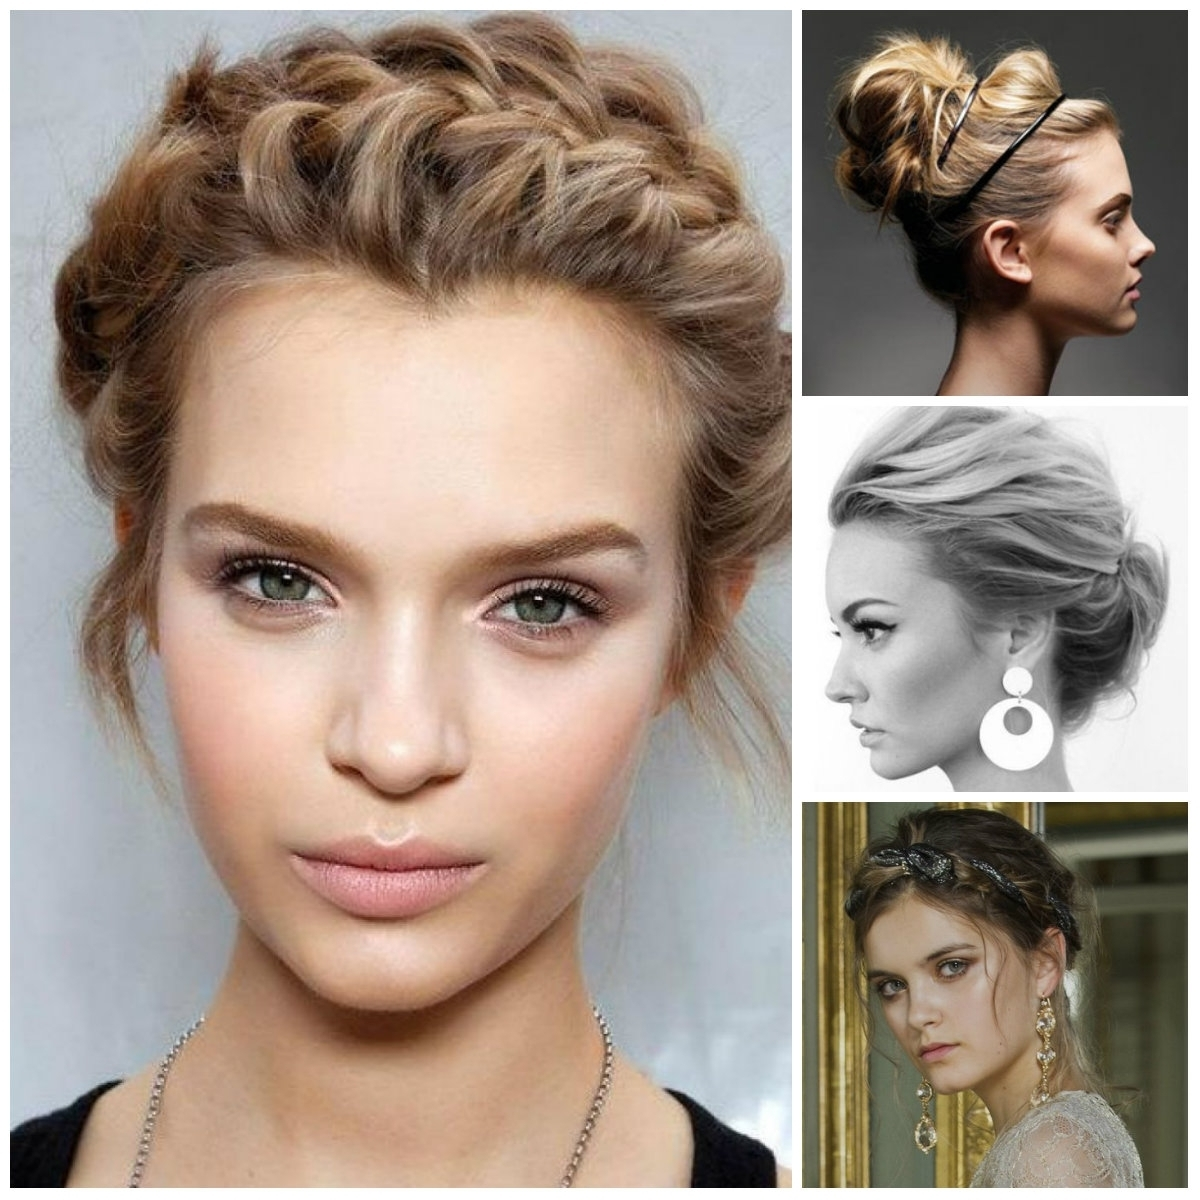 Casual Updo Hairstyles For Long Hair Casual Updo Hairstyles For Long Regarding Quick Updos For Long Hair Casual (View 5 of 15)